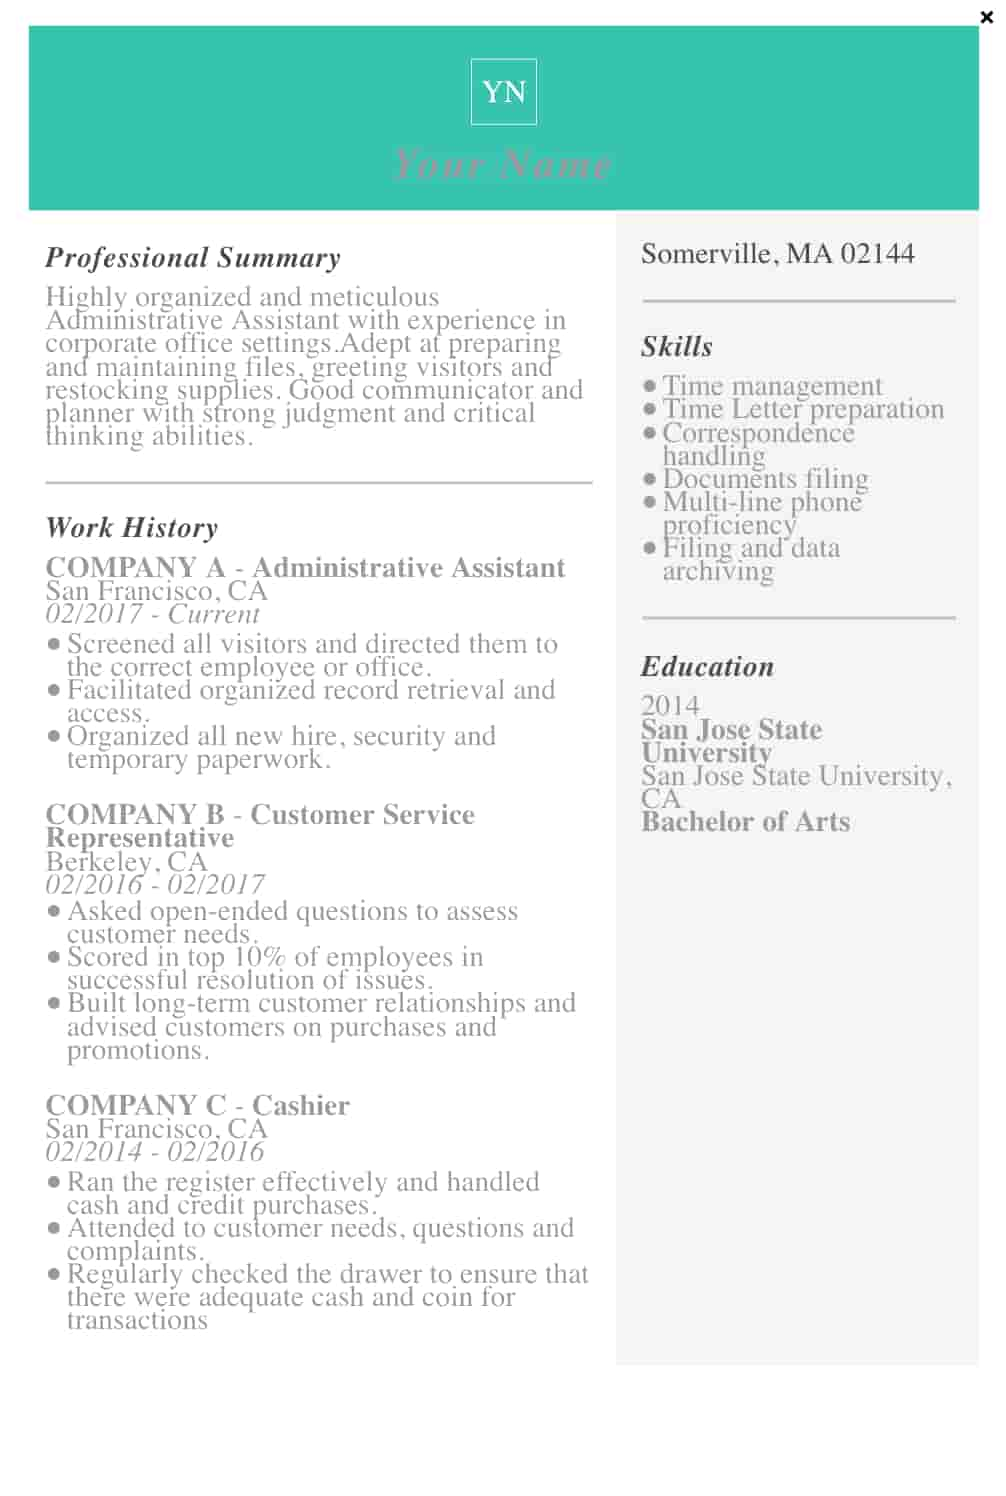 free resume templates for microsoft word to make your own most professional template Resume Most Professional Resume Template